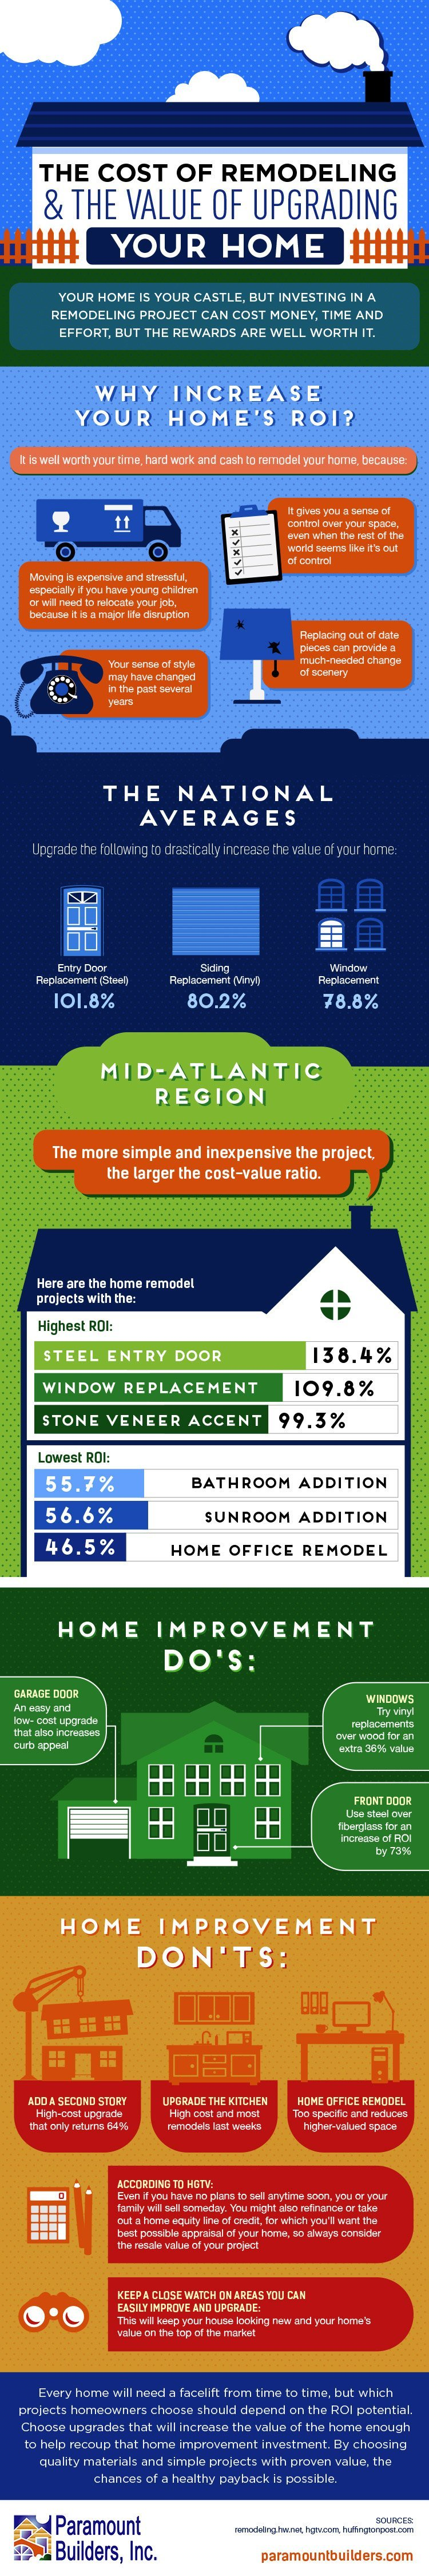 The Cost of Remodeling vs Value of Upgrading Your Home